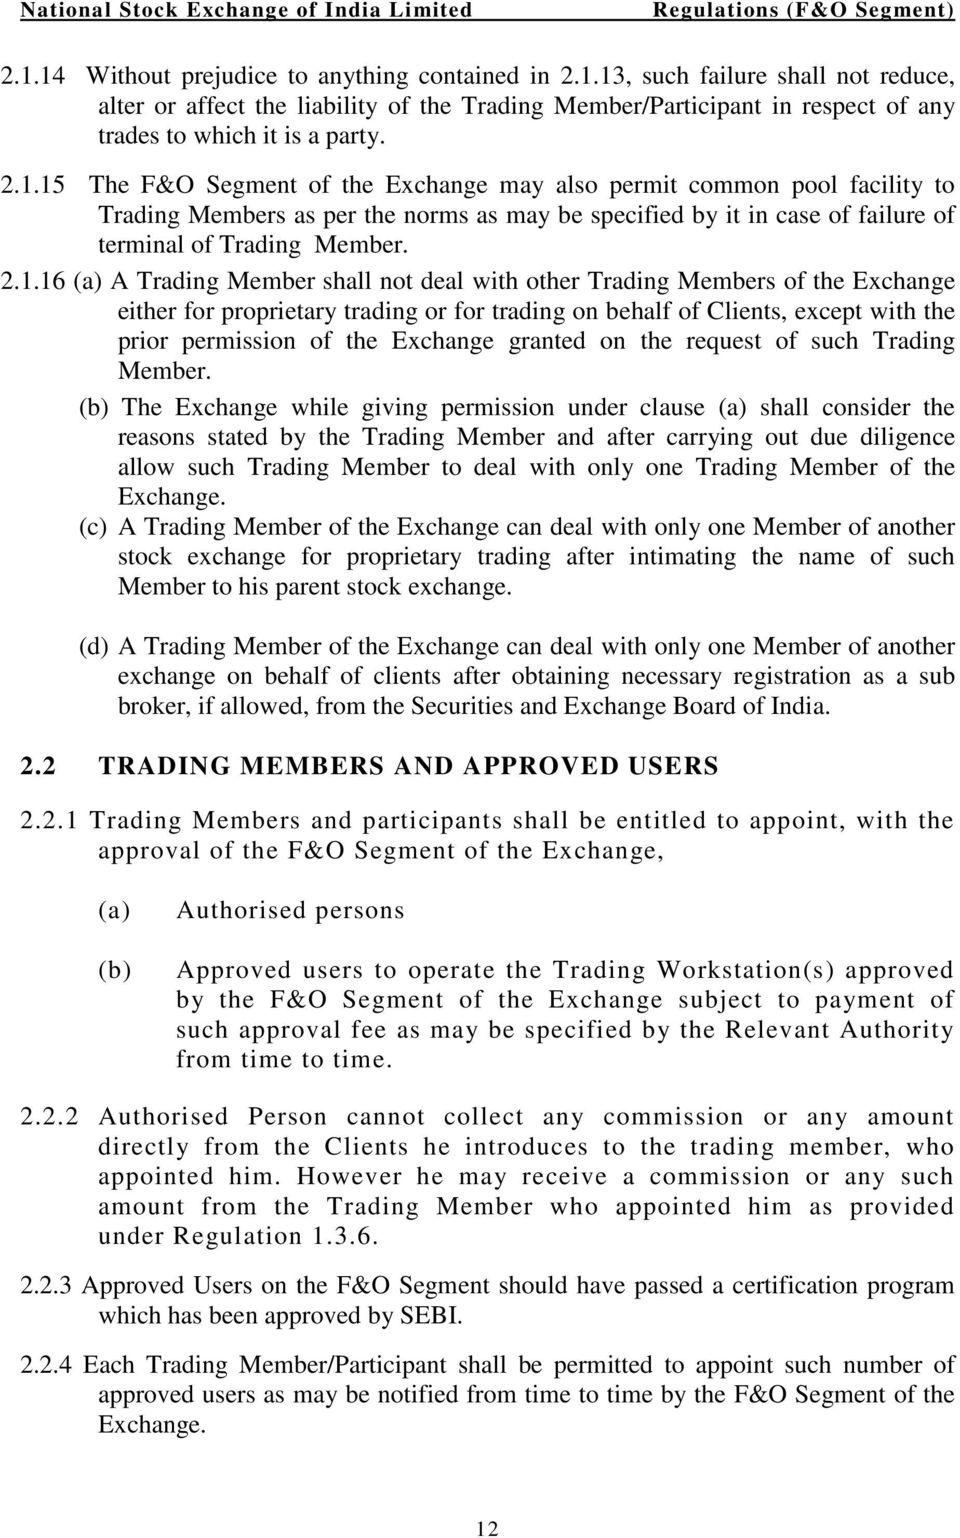 A Trading Member shall not deal with other Trading Members of the Exchange either for proprietary trading or for trading on behalf of Clients, except with the prior permission of the Exchange granted